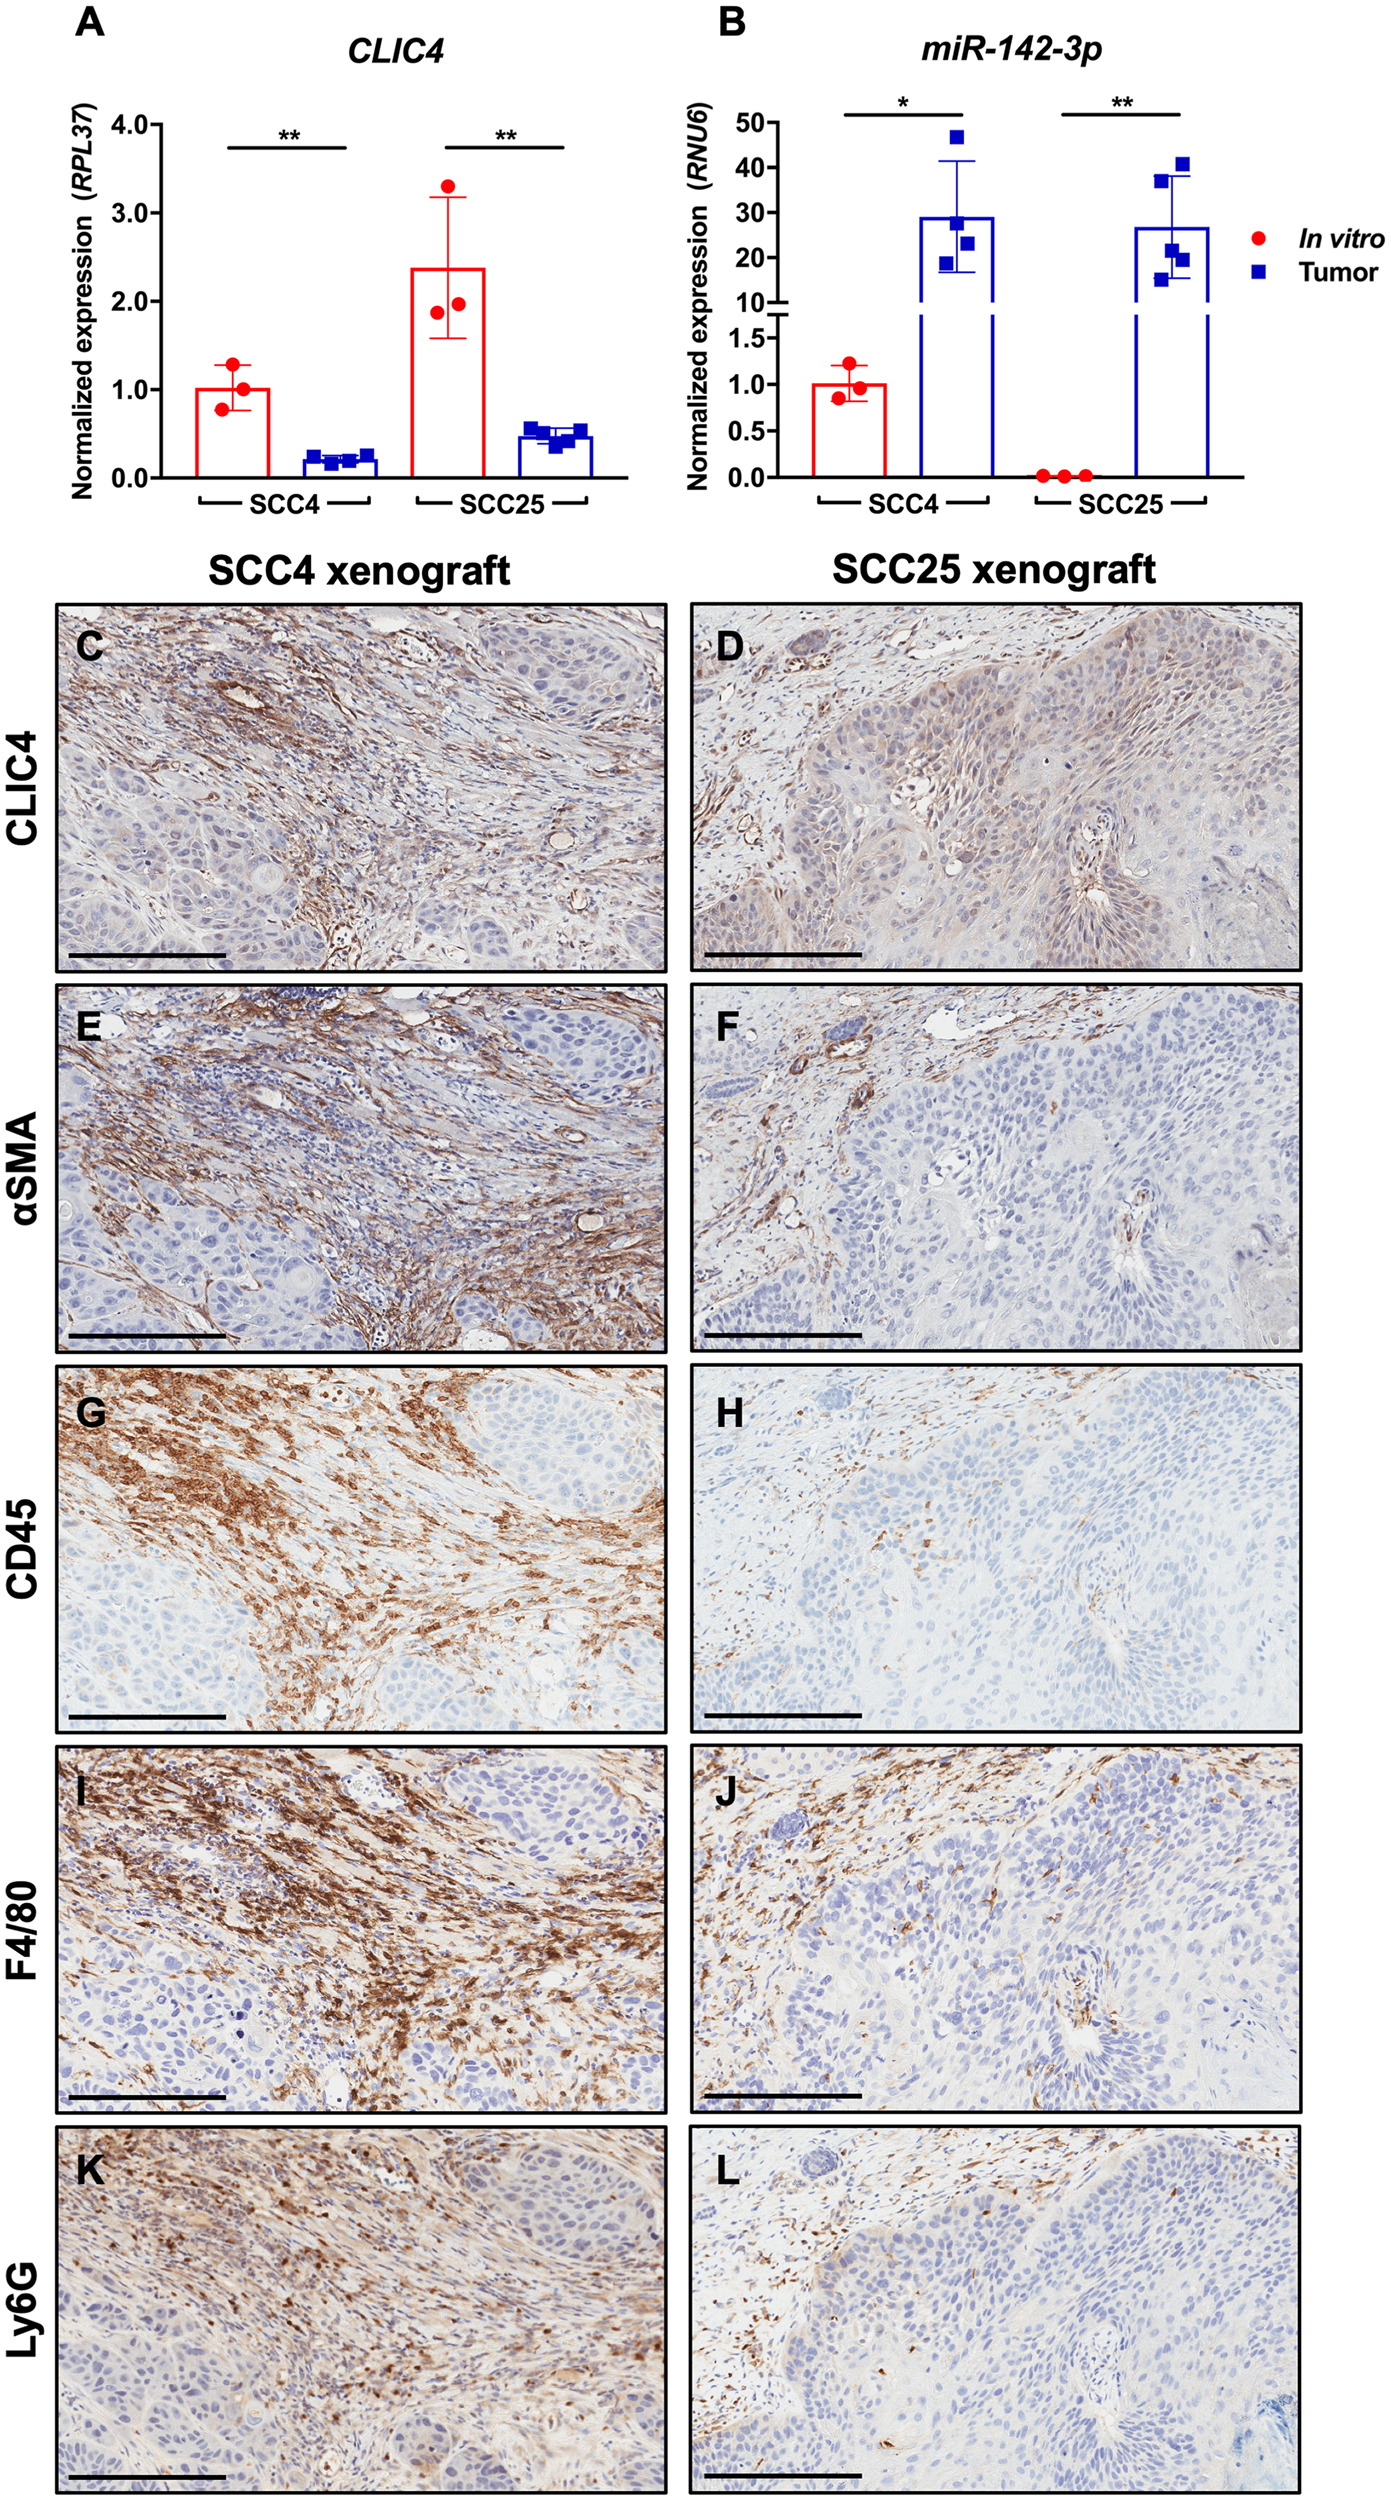 CLIC4 is downregulated in SCC xenografts concurrent with immune cell infiltration and miR-142-3p upregulation.